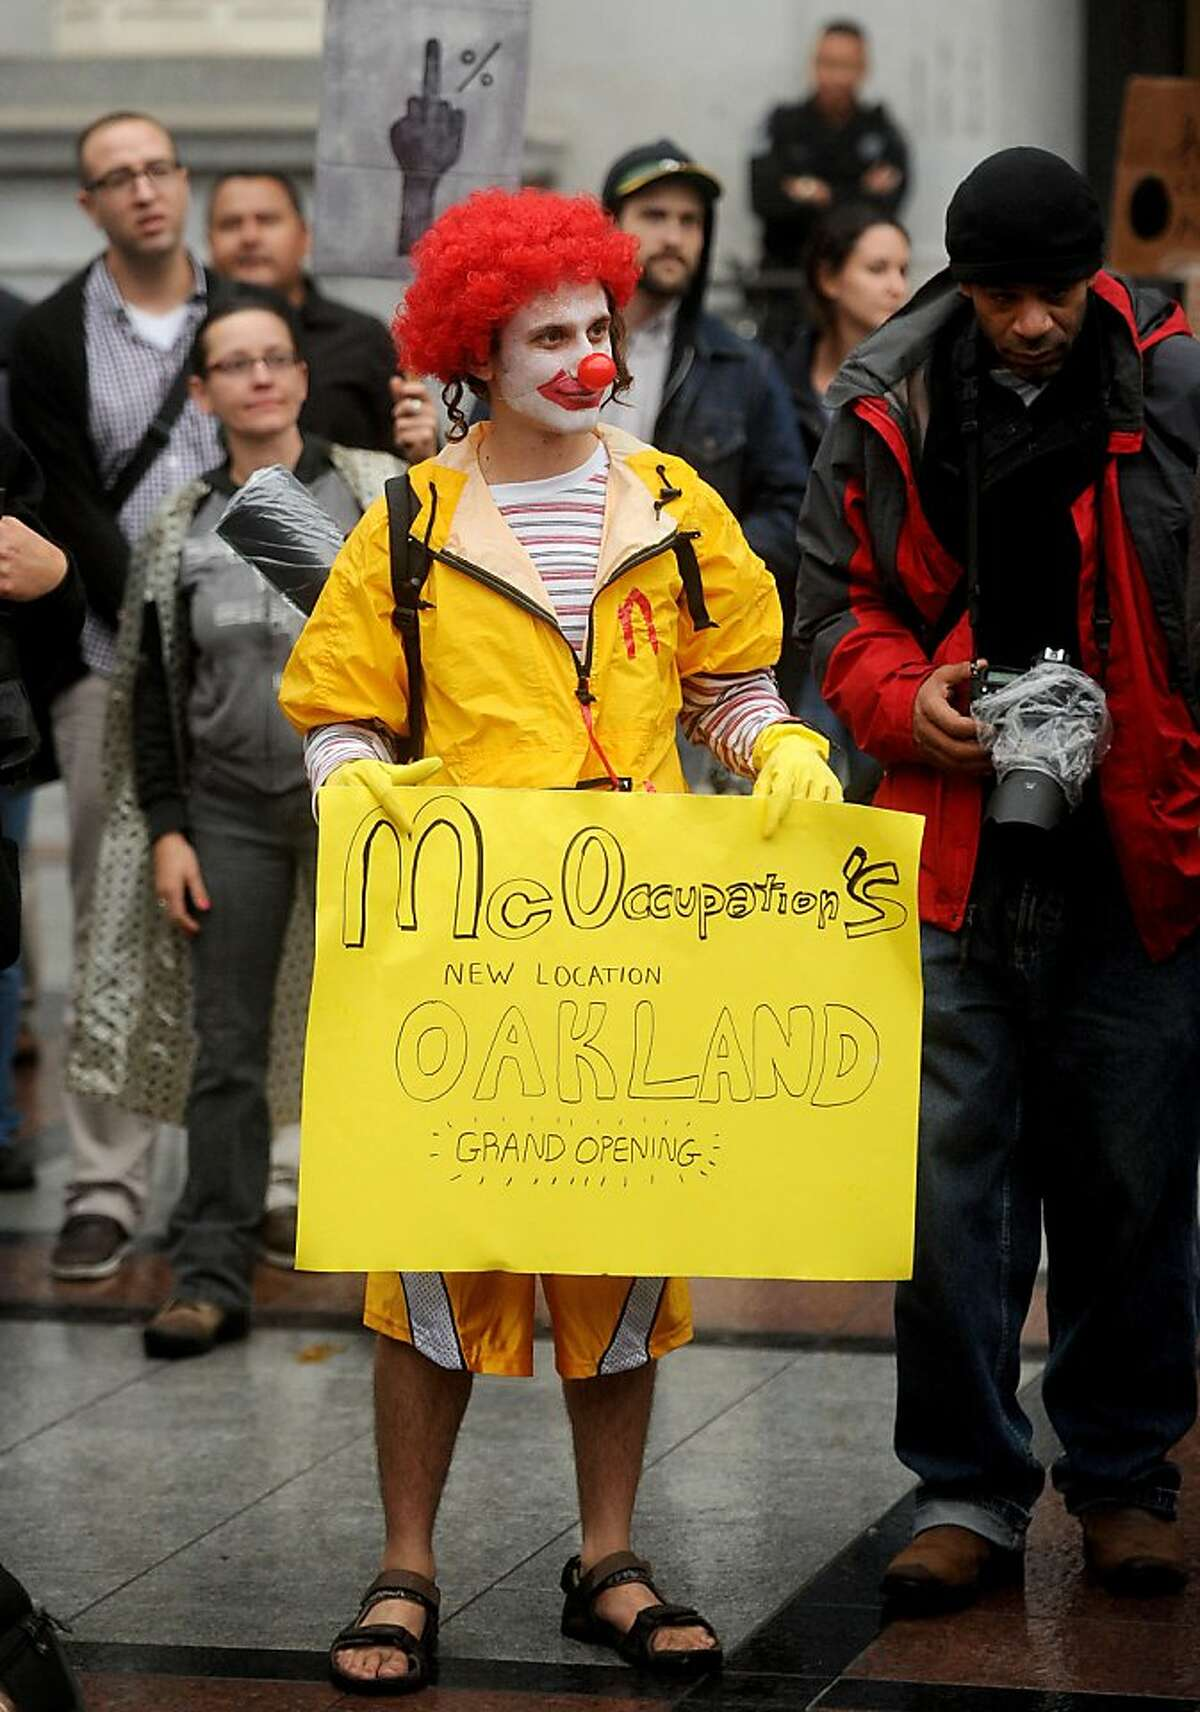 A protester dressed as Ronald McDonald who gave his name as Pipes, celebrates the spread of the Occupy protest movement to Oakland, Calif., on Monday, Oct. 10, 2011.